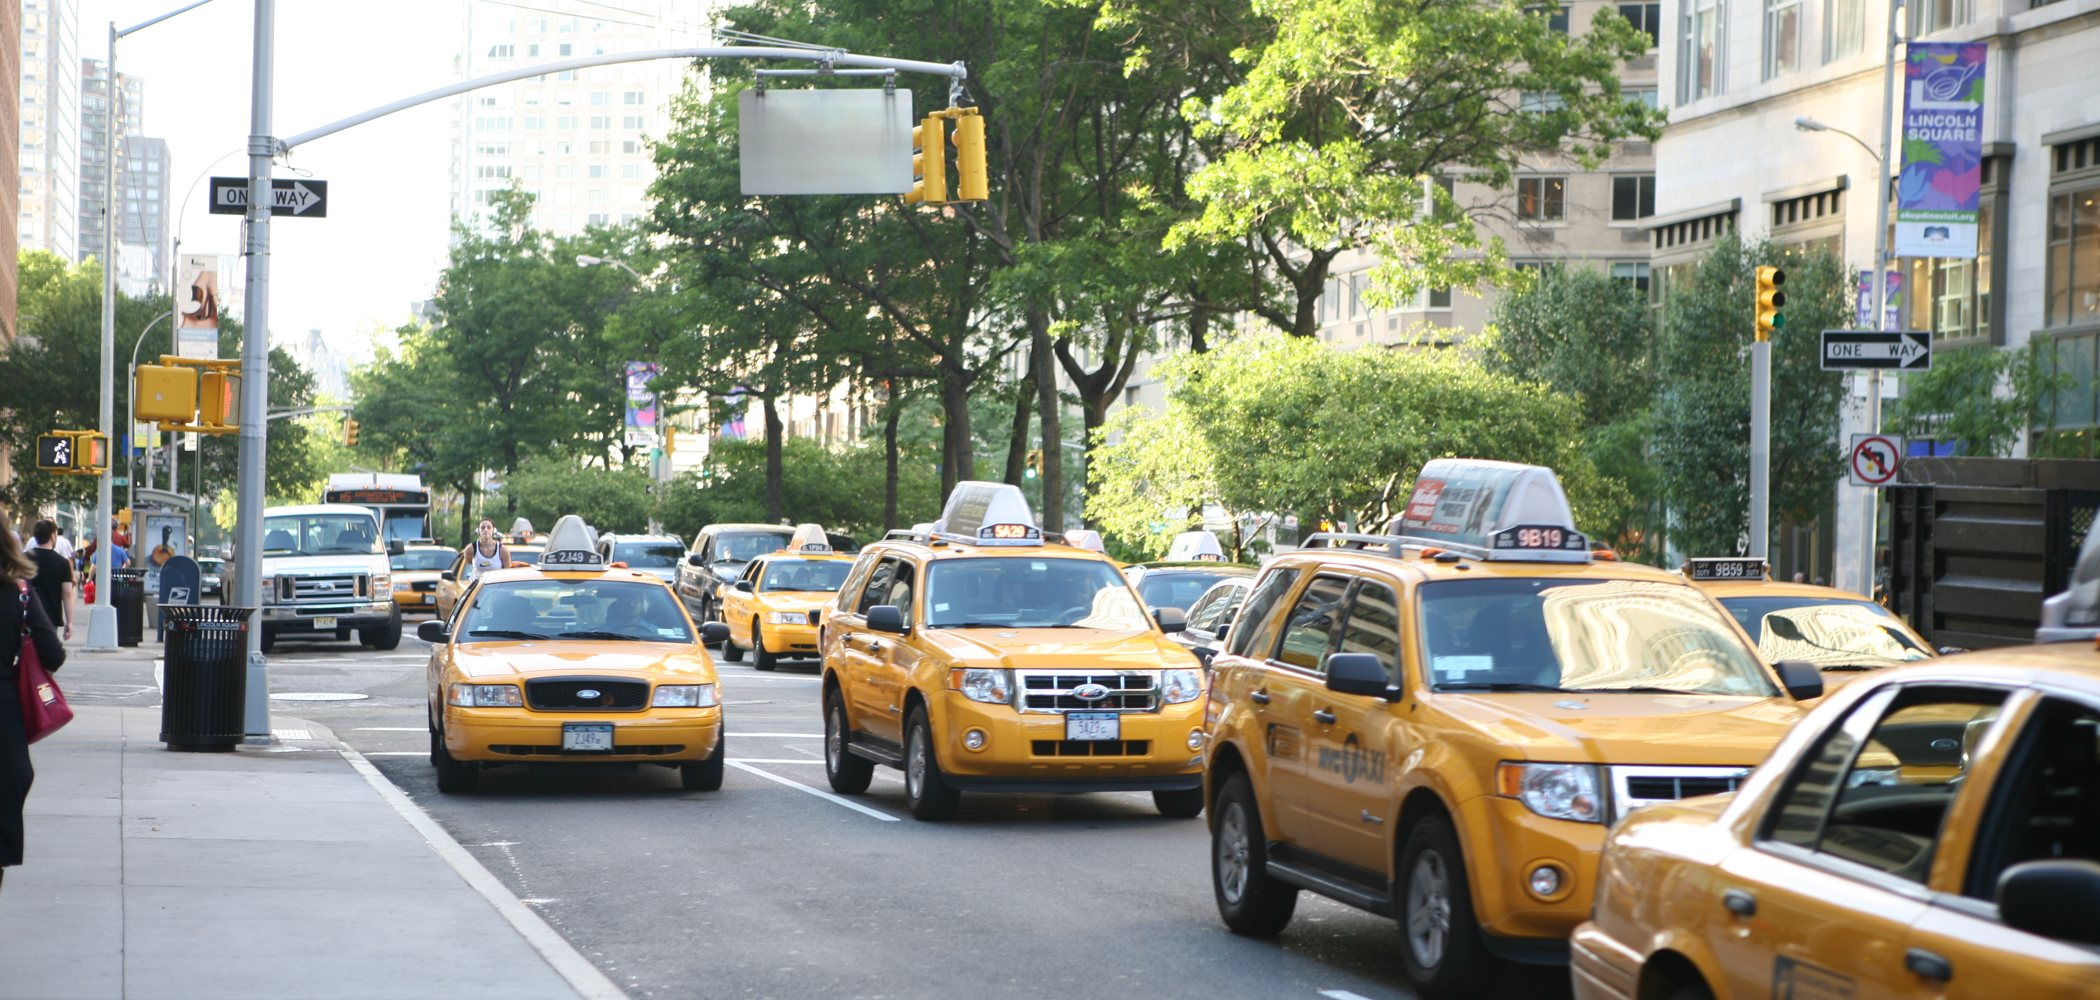 New York City street scene with taxis